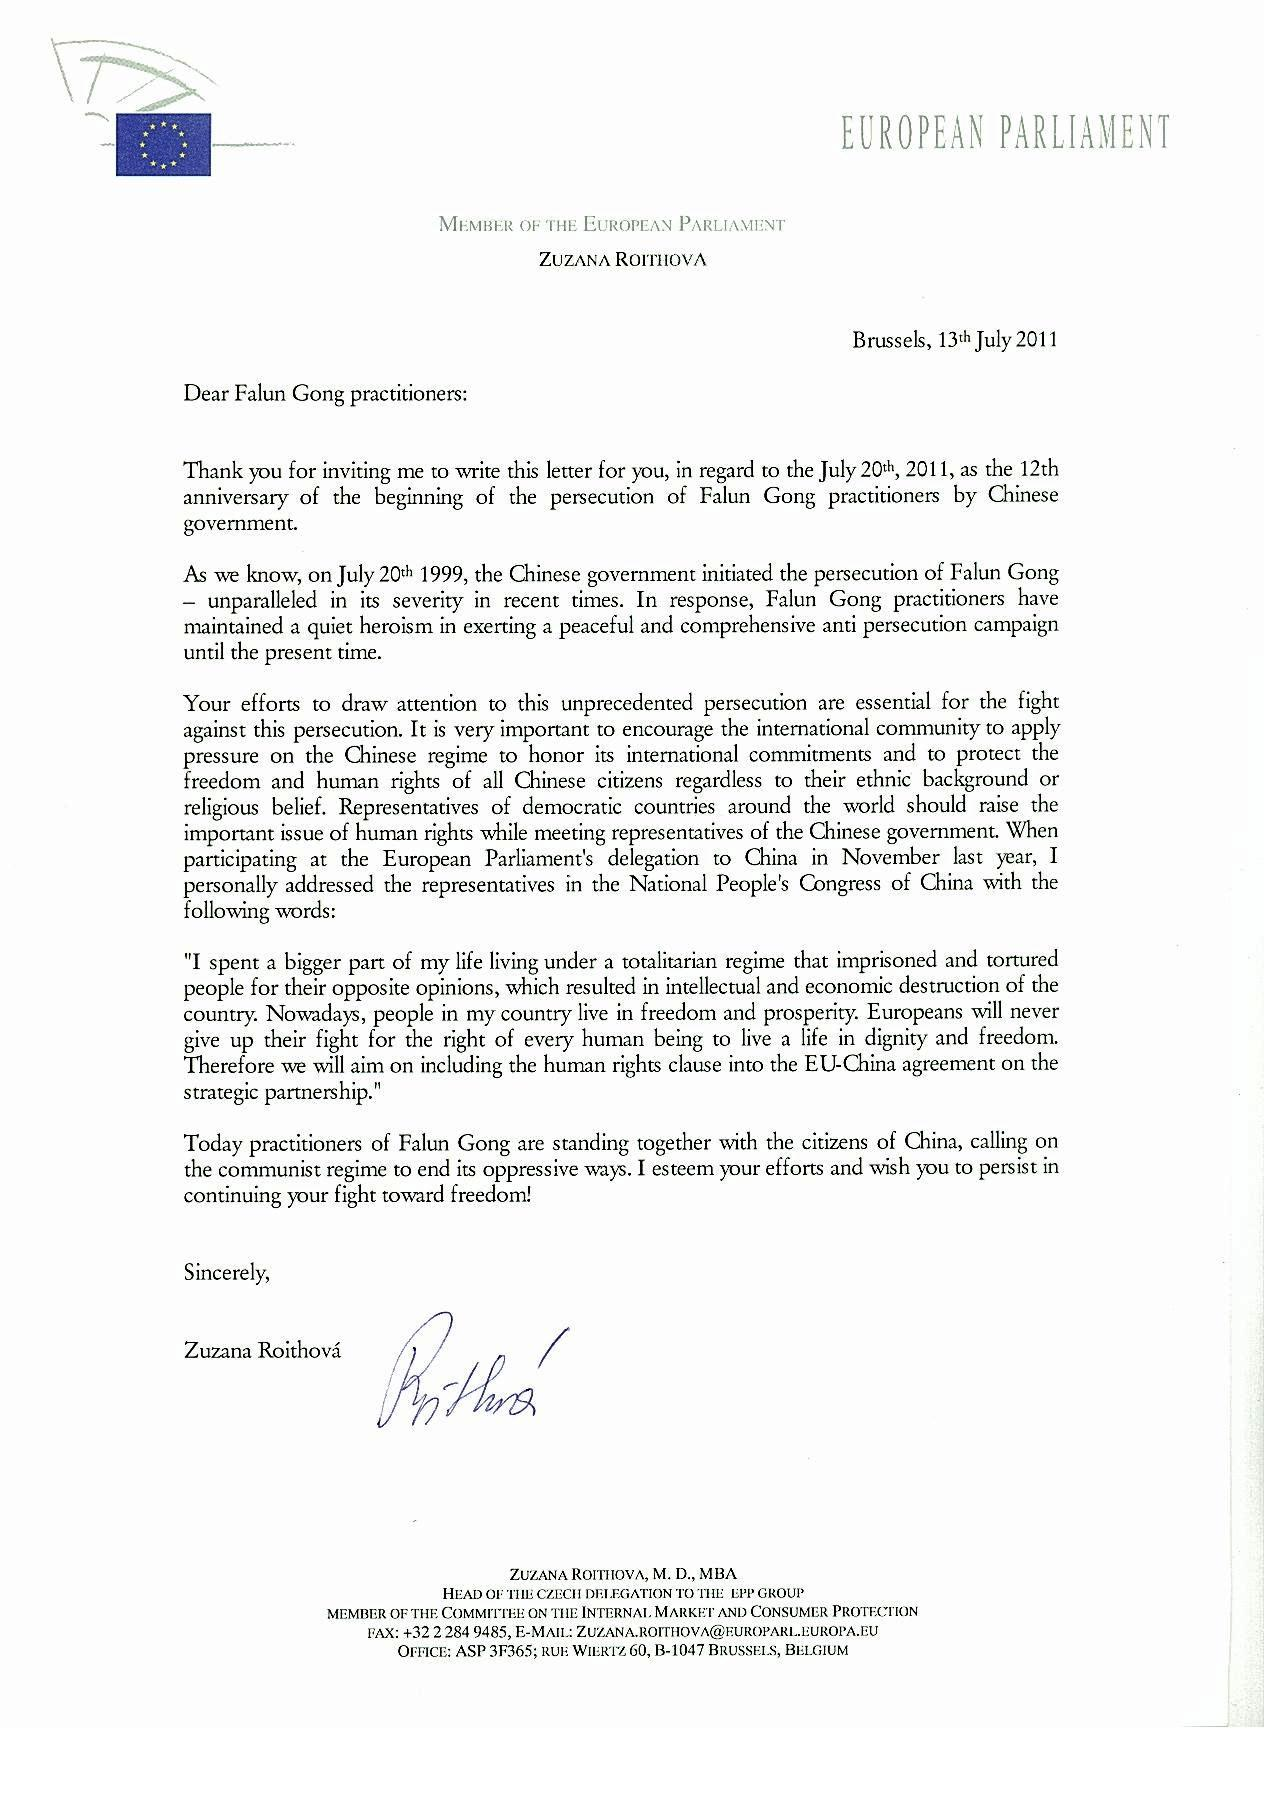 European Members of Parliament Write to Support Falun Gong